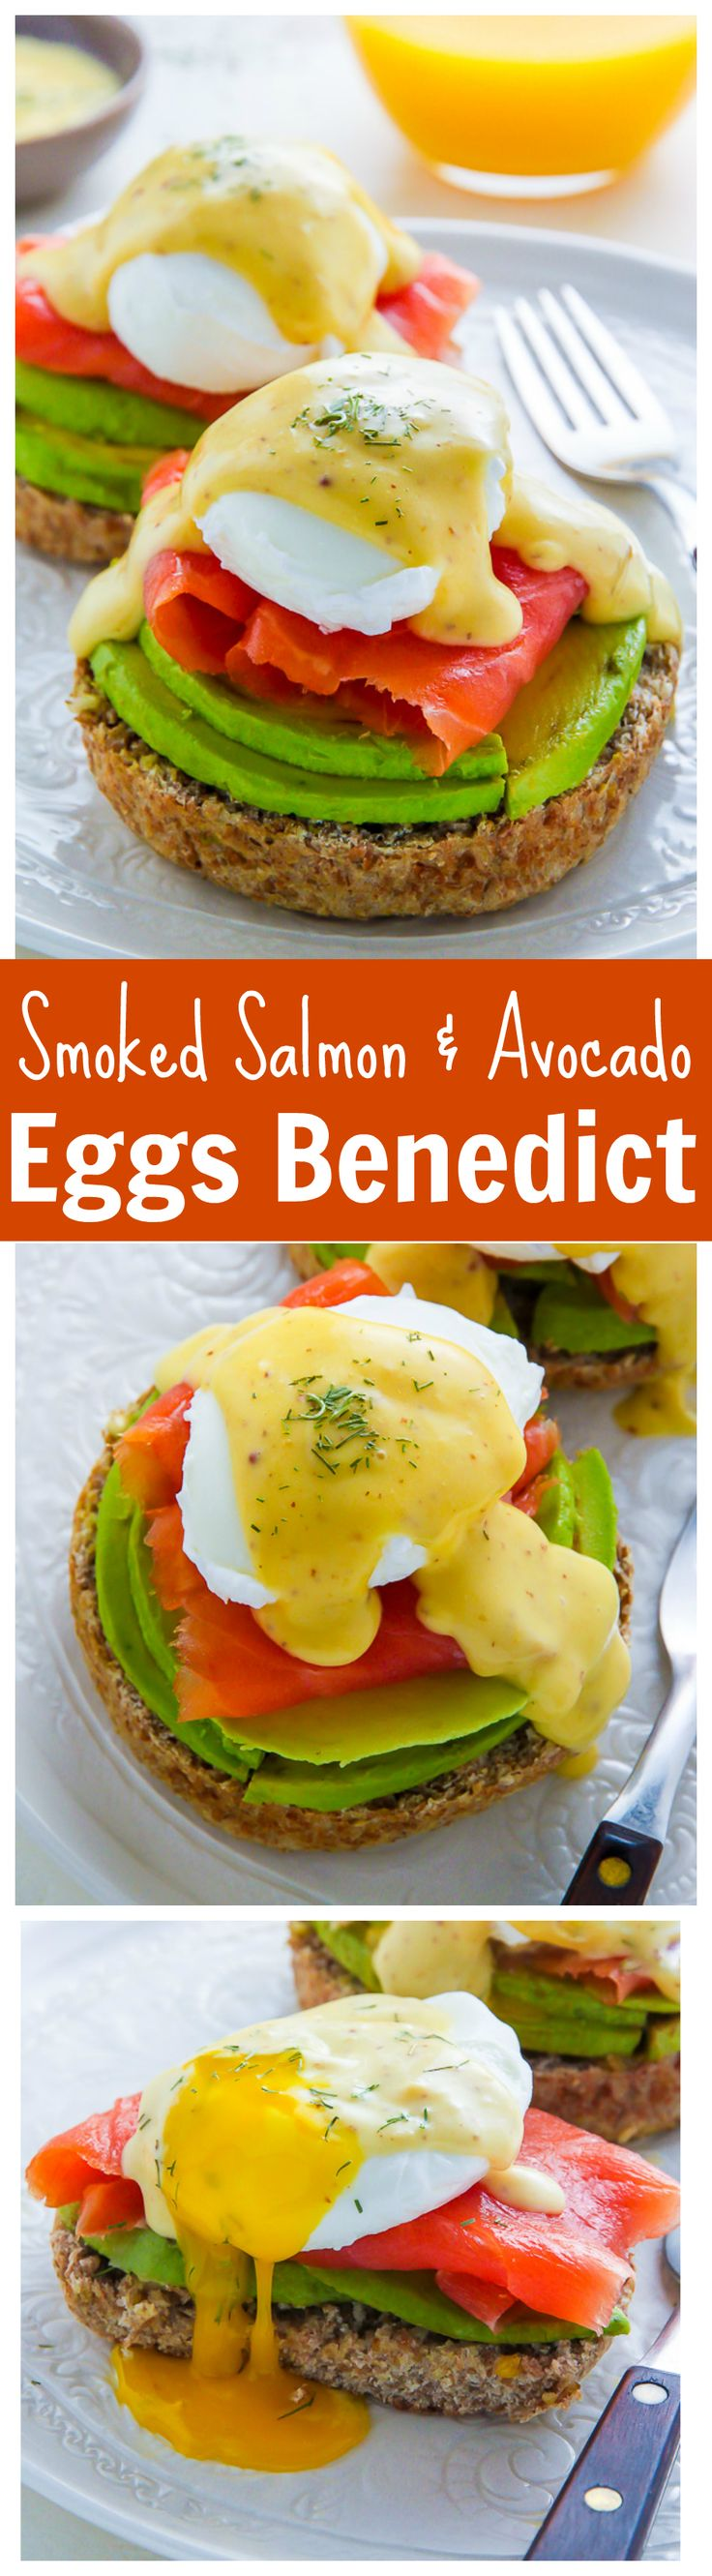 benedict eggs and smoked salmon eggs benedict eggs benedict eggs eggs ...